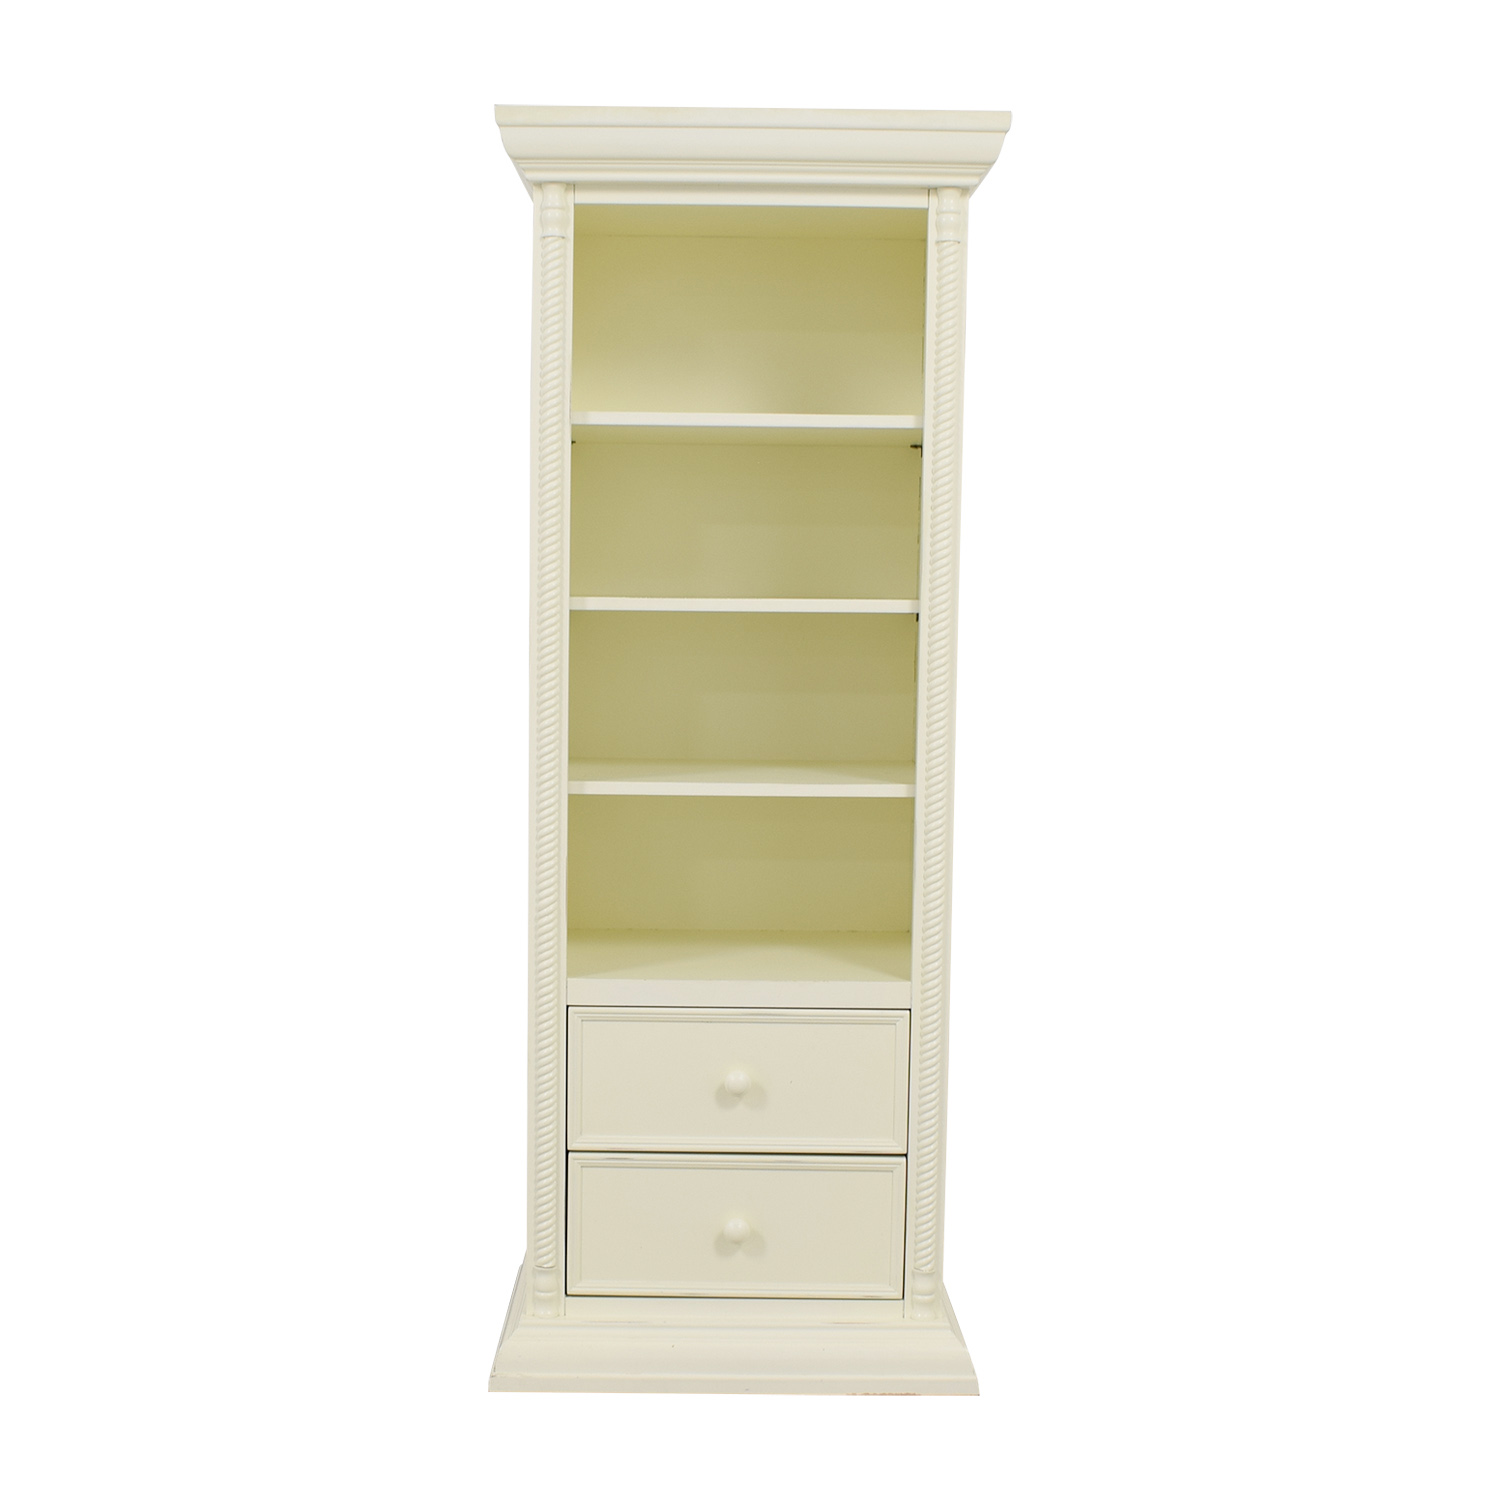 Bellini Bellini White Two-Drawer Bookcase nyc